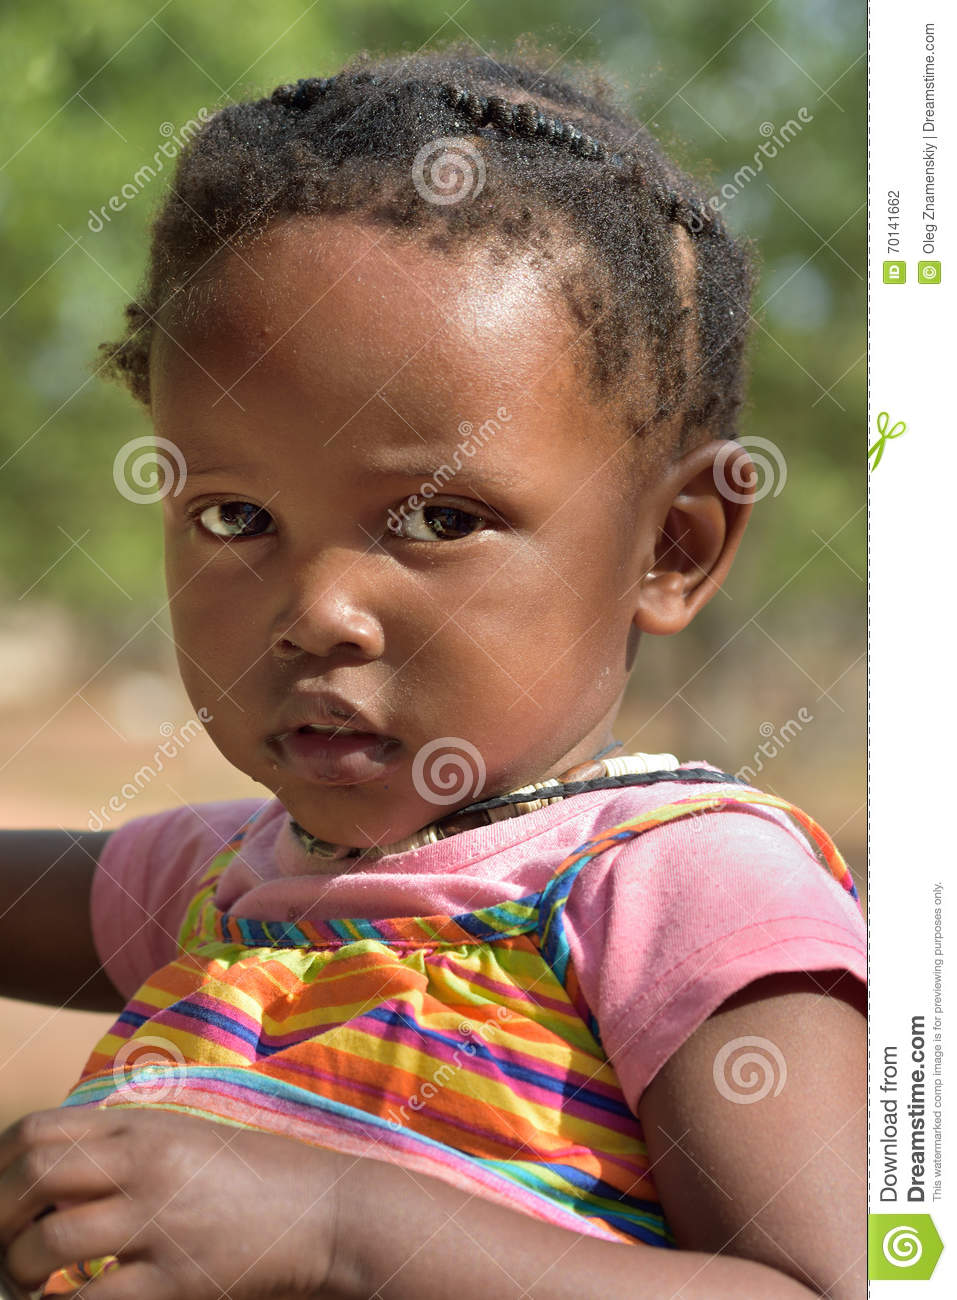 Kamanjab Namibia  city images : KAMANJAB, NAMIBIA FEB 1, 2016: Little unidentified Himba girl in ...